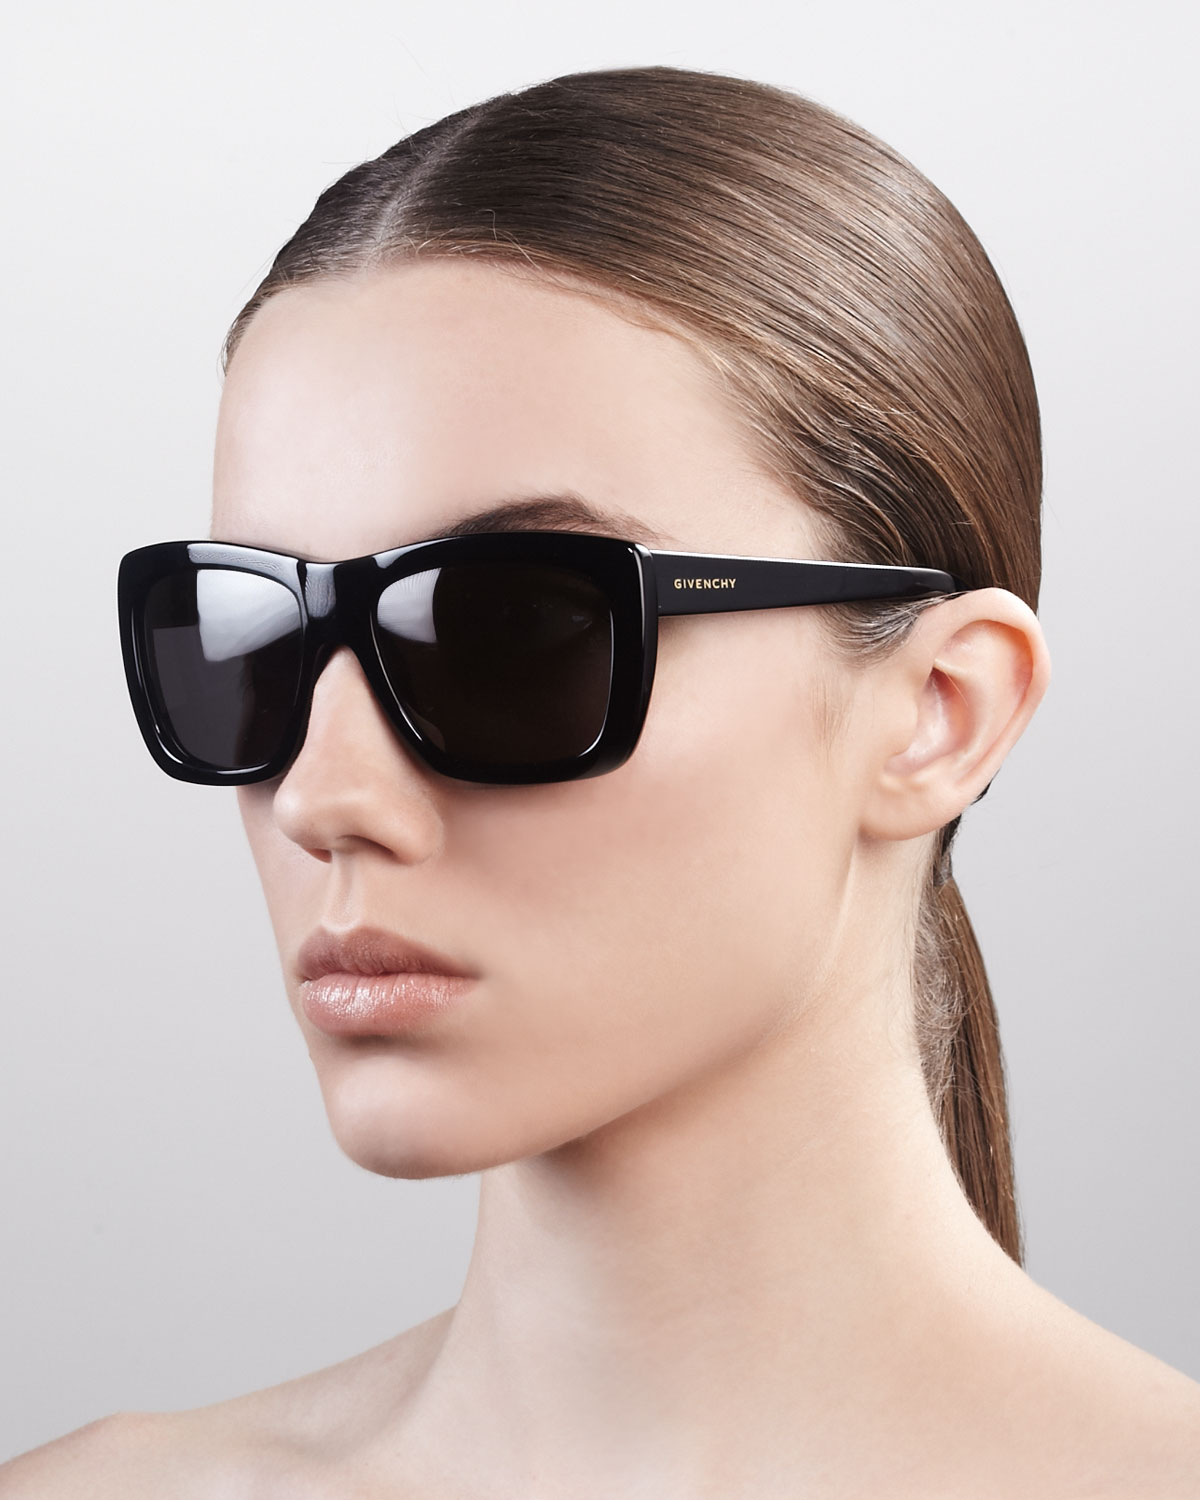 db0db9a9f3 Lyst - Givenchy Oversized Square Sunglasses Shiny Black in Black